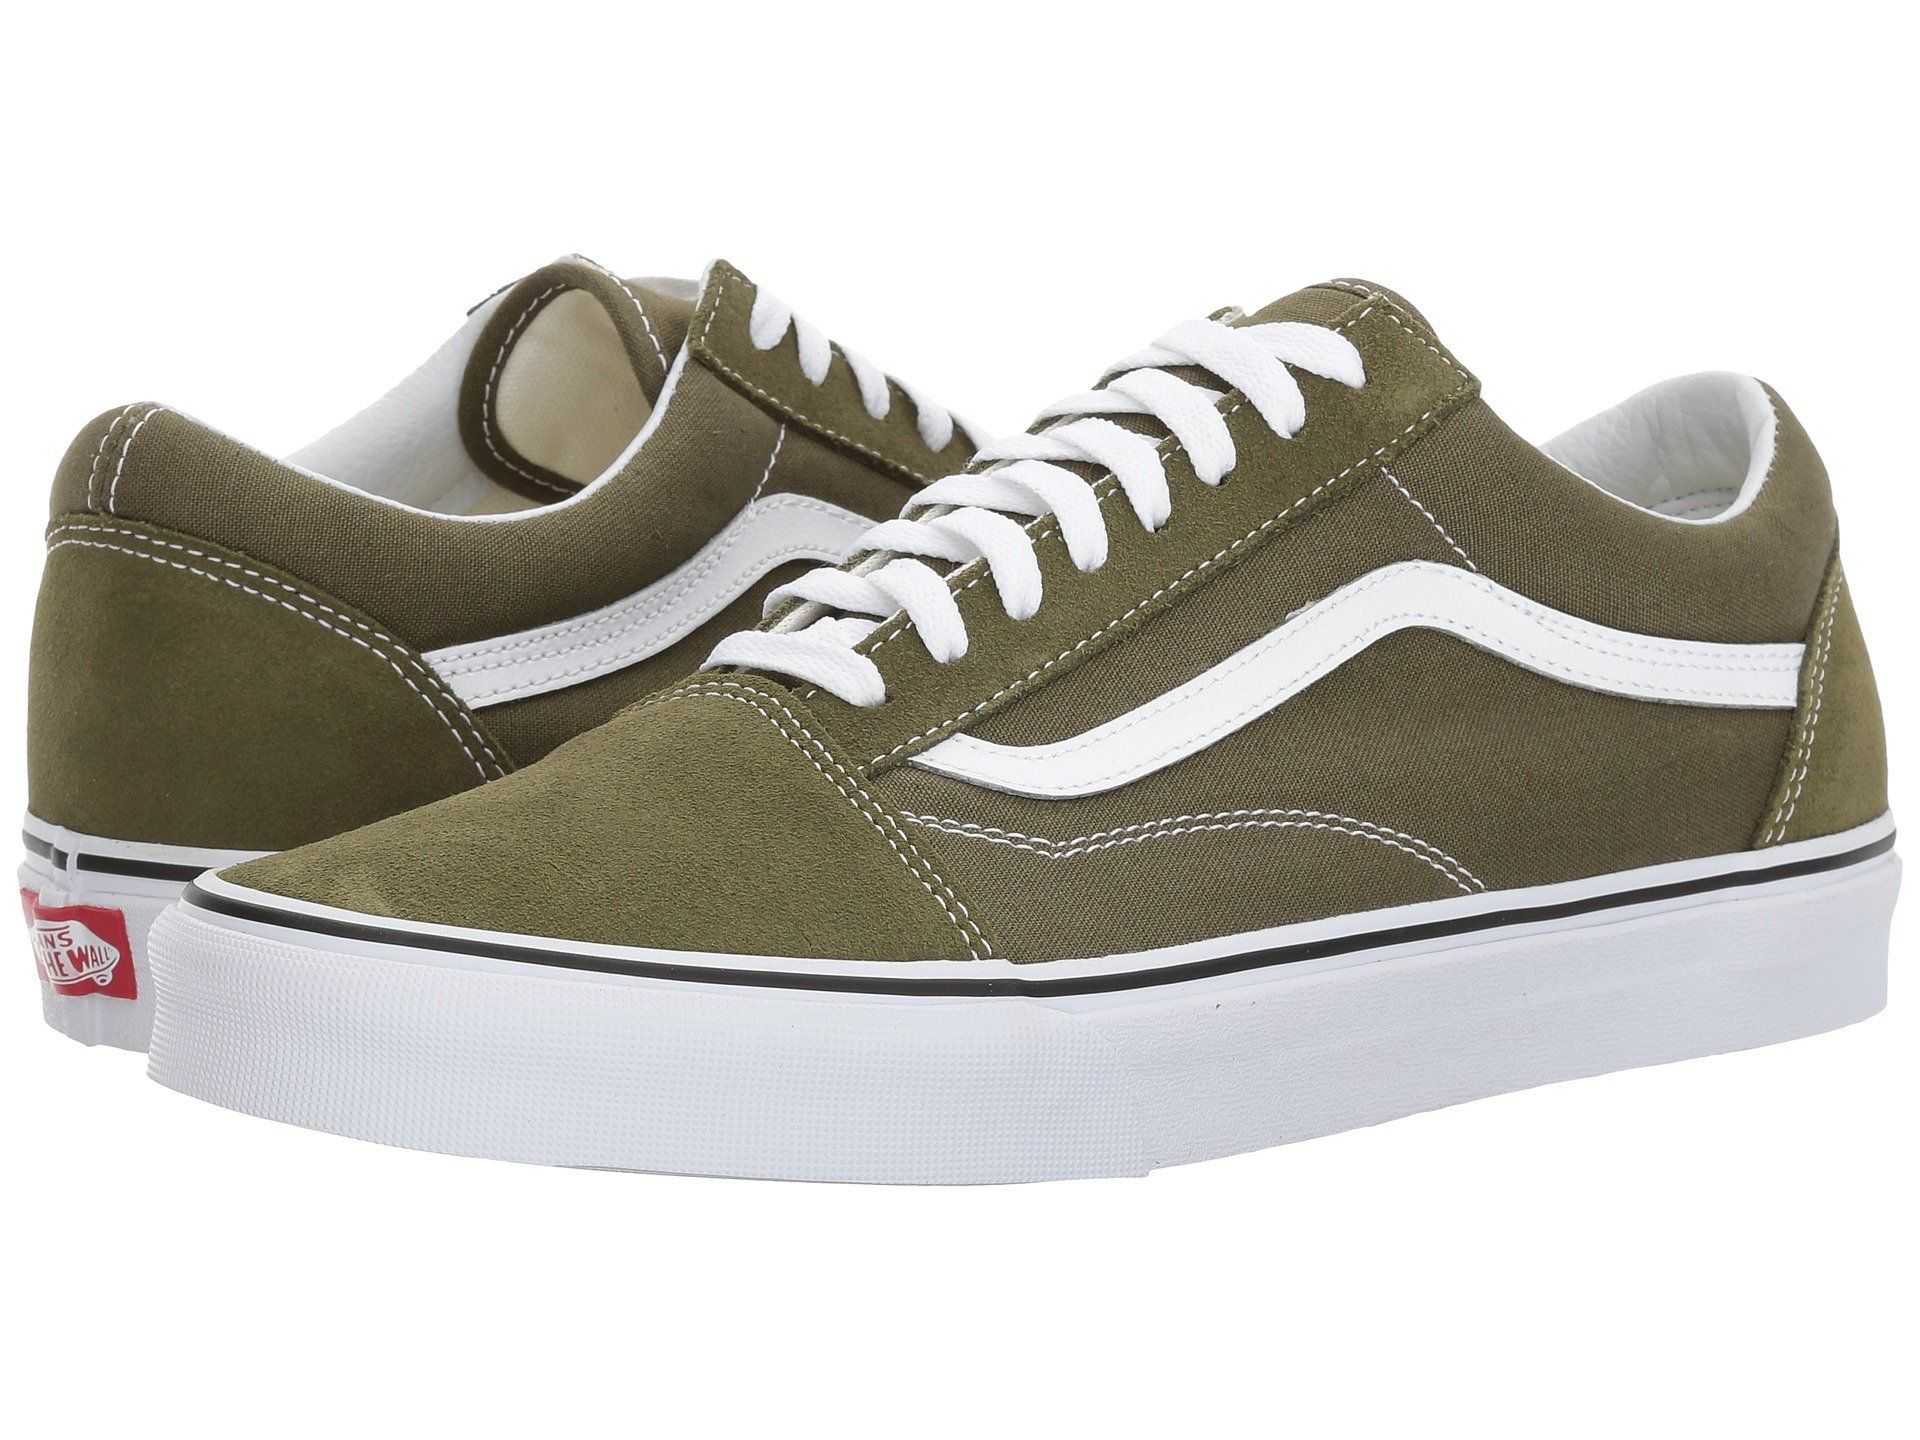 b58c6eed2921 VANS Old Skool™.  vans  shoes